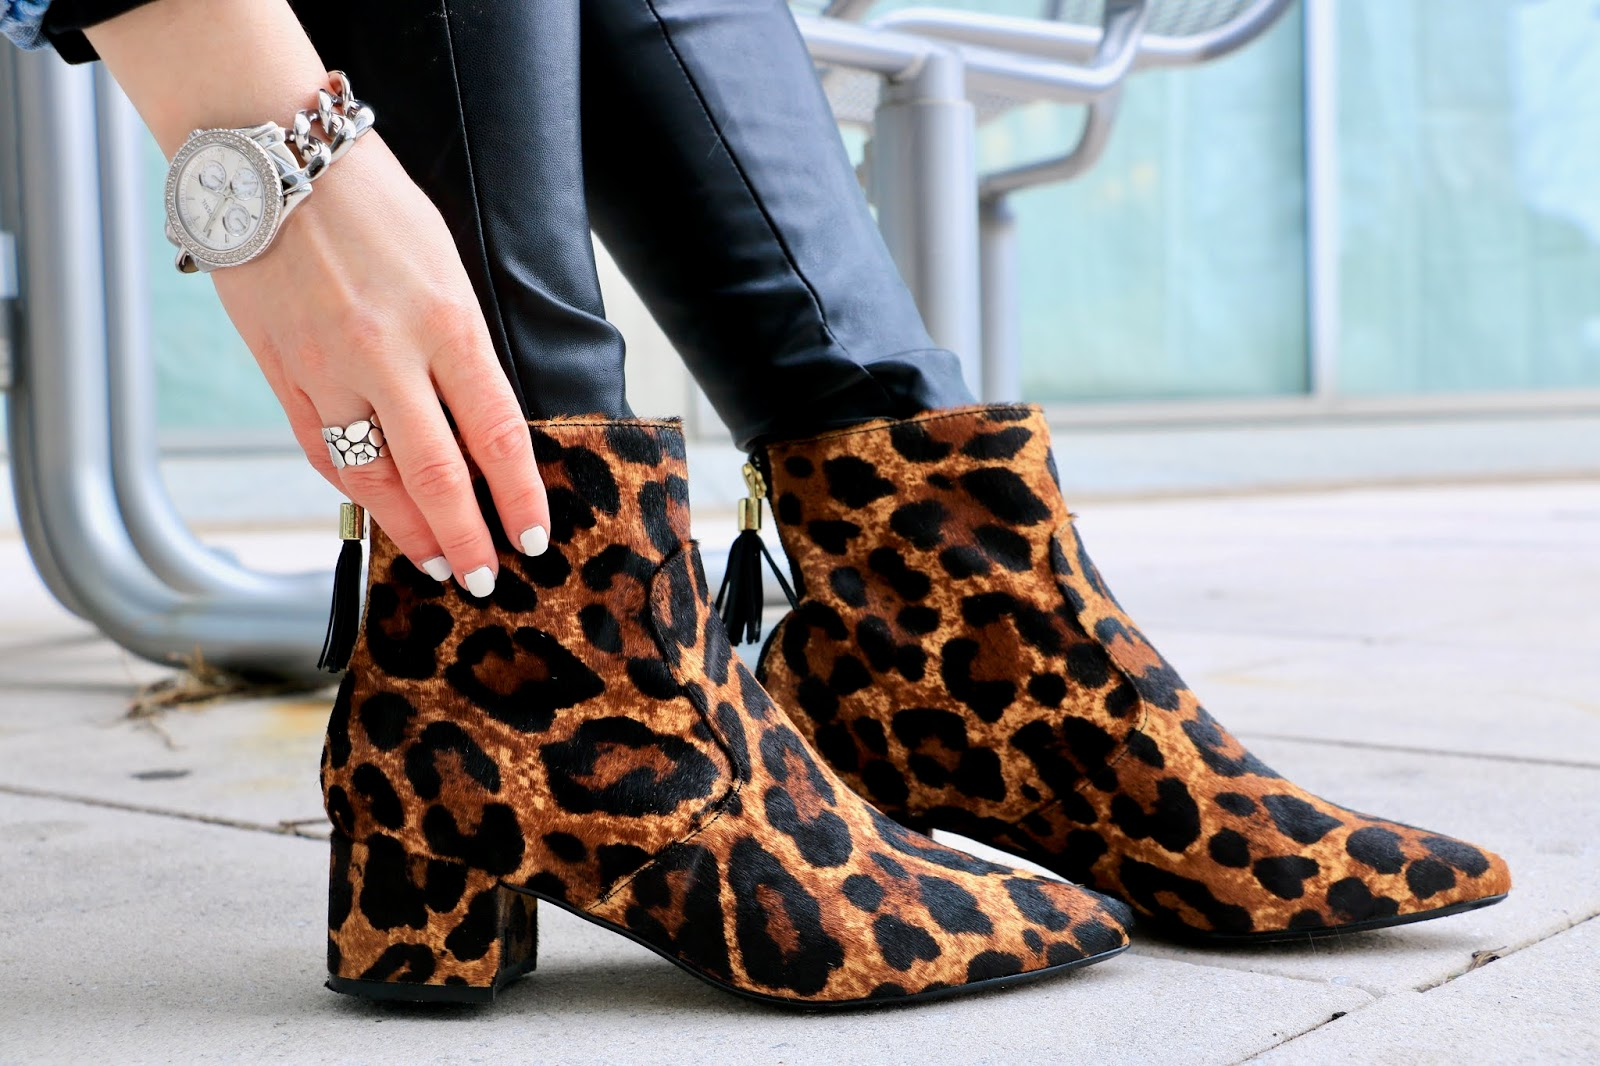 Nyc fashion blogger Kathleen Harper's Karl Lagerfeld leopard booties